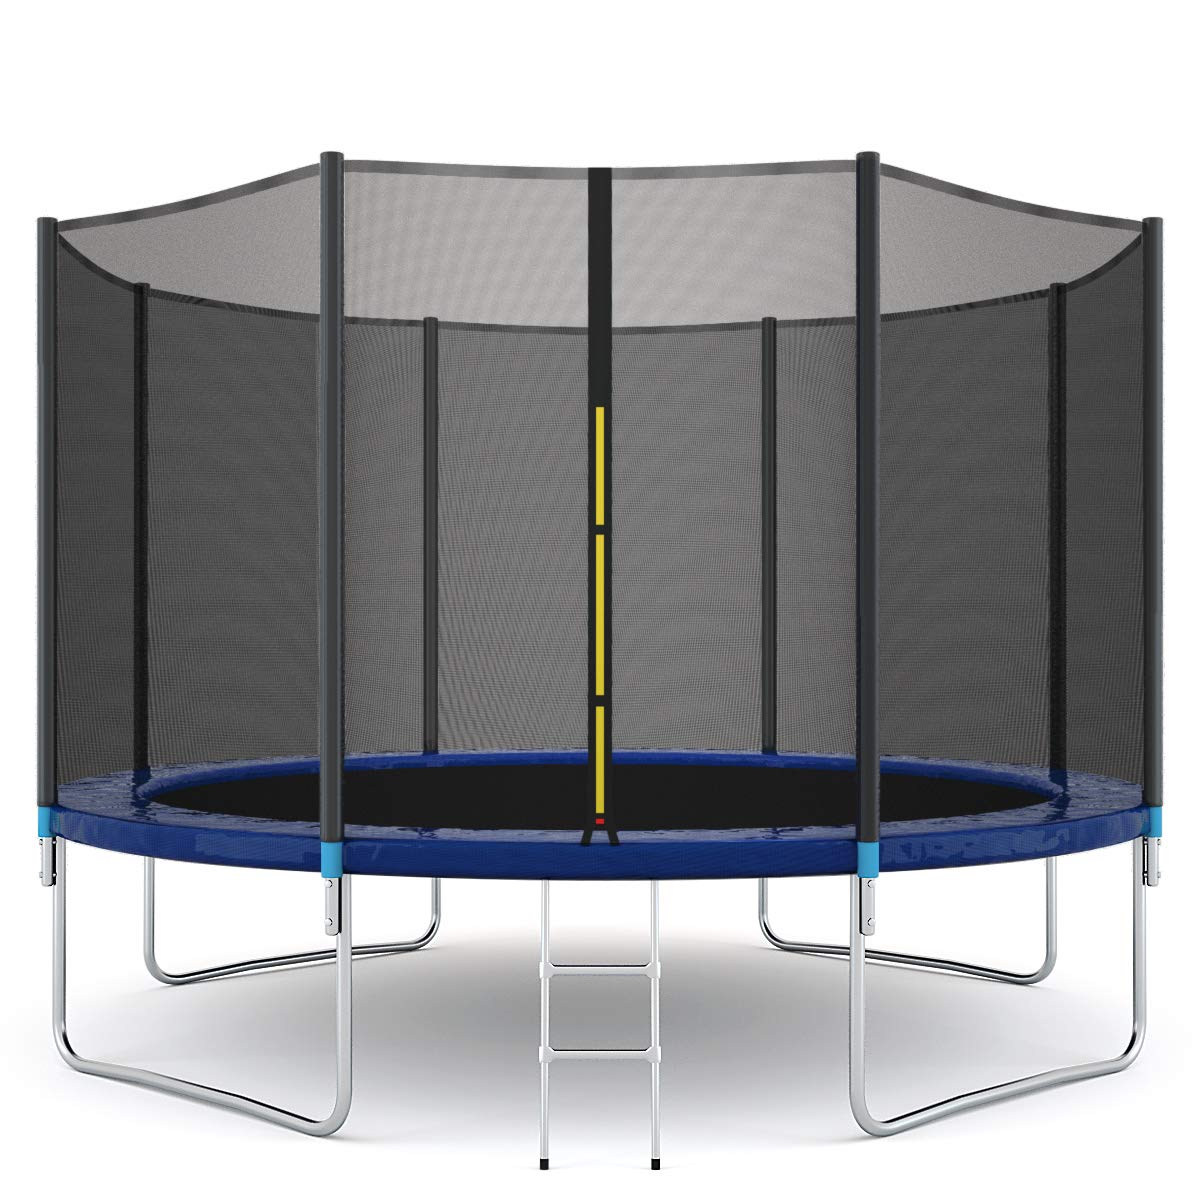 Giantex Outdoor Trampoline Bounce Jumping Trampolines W/Safety Pad Enclosure Net & Ladder,14 FT by Giantex